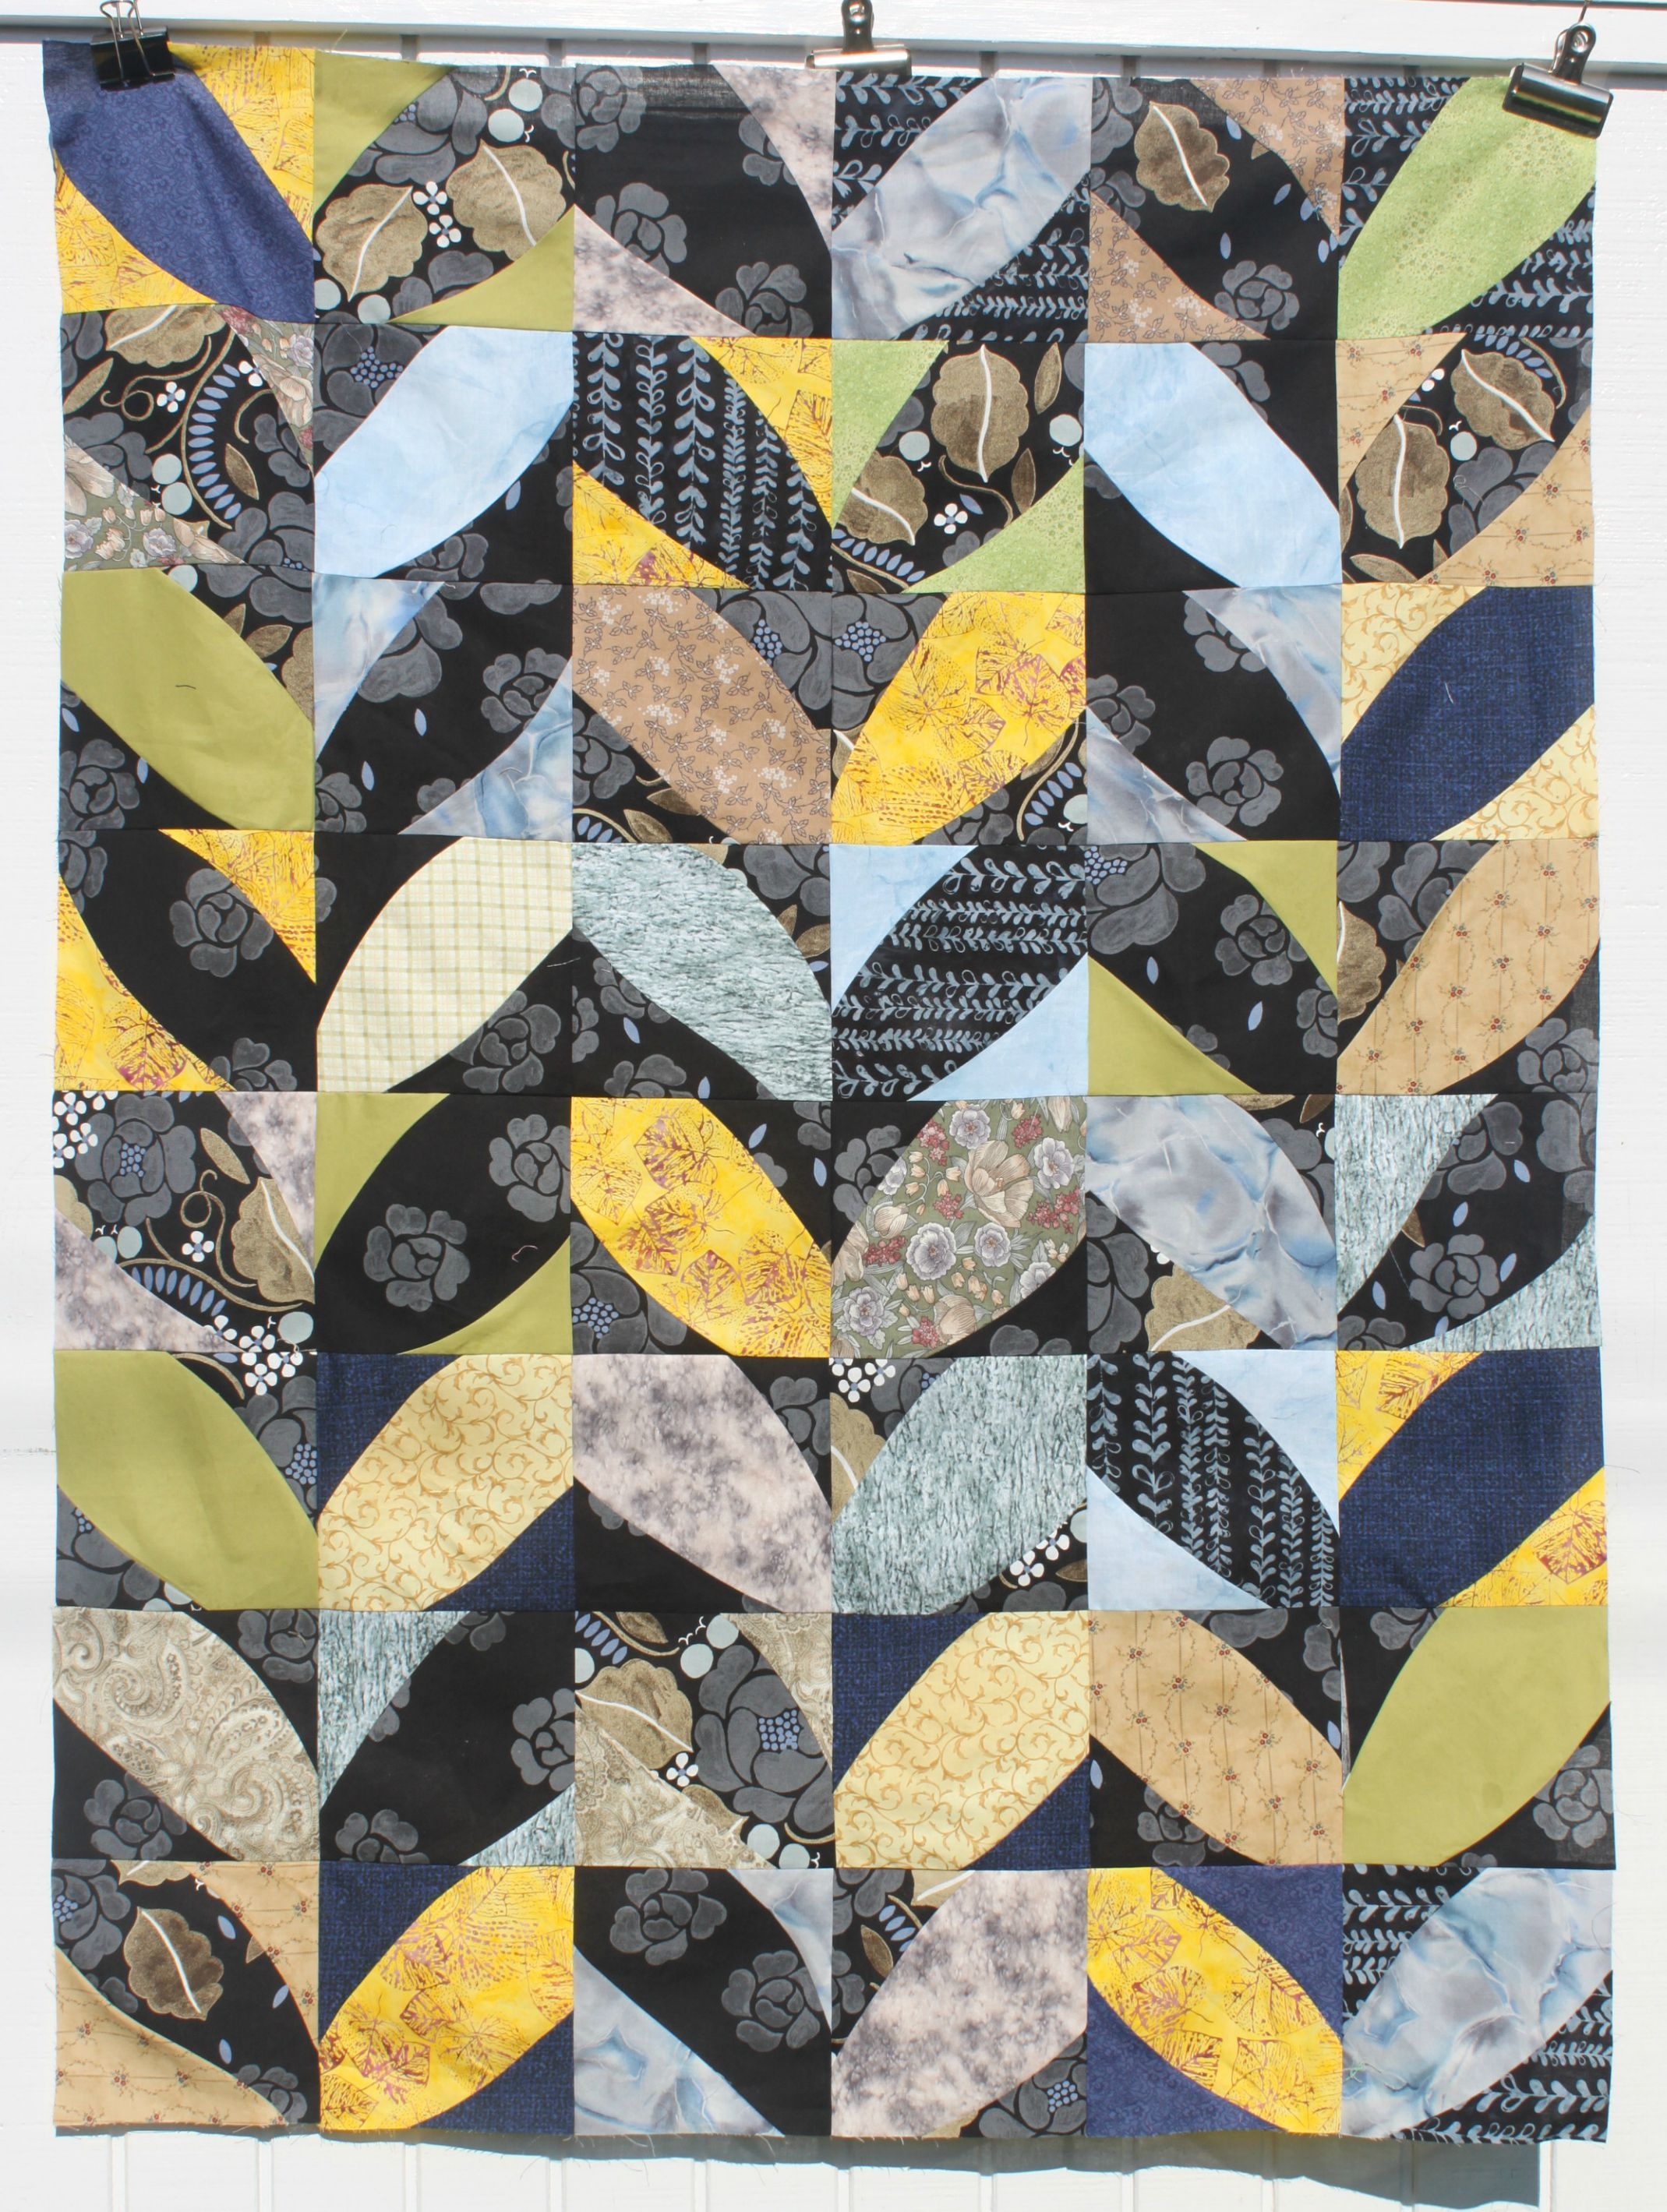 Quilt based on Winter from Cultural Fusion book, Sujata Shah, Marimekko fabric as inspiration start